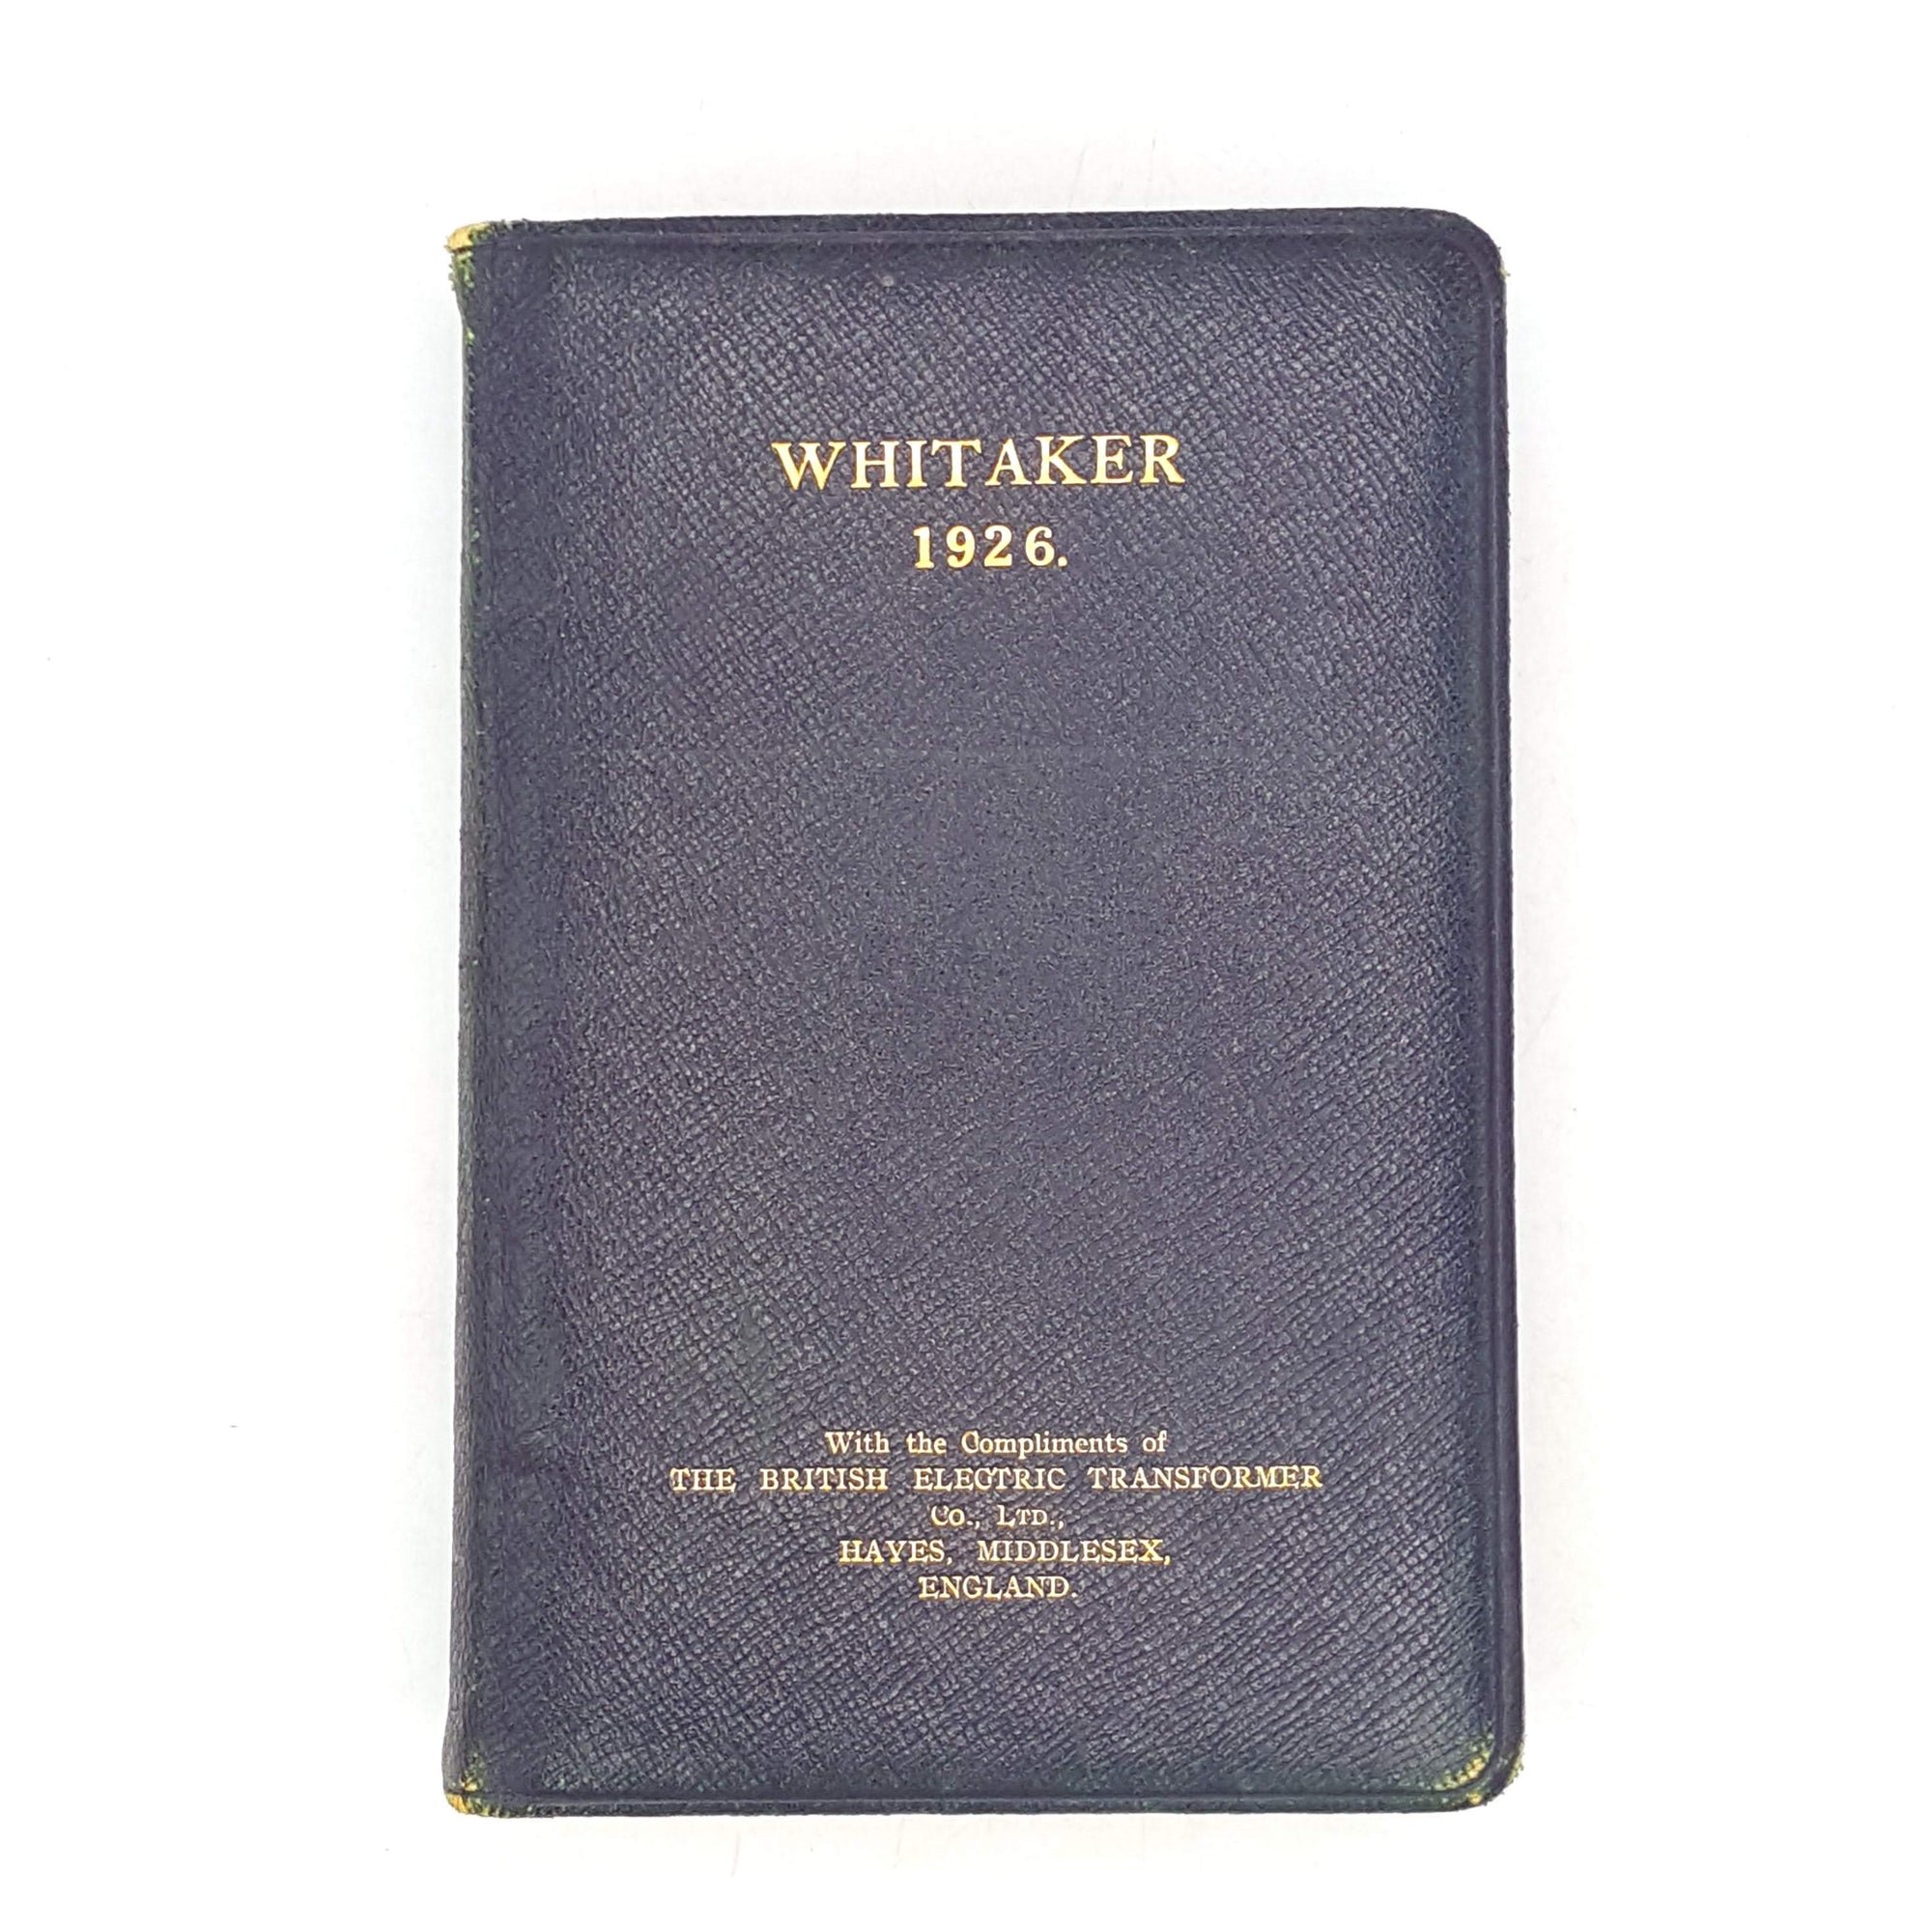 thrift-rare-edition-country-house-library-1926-almanack-whitaker-black-books-old-gold-vintage-